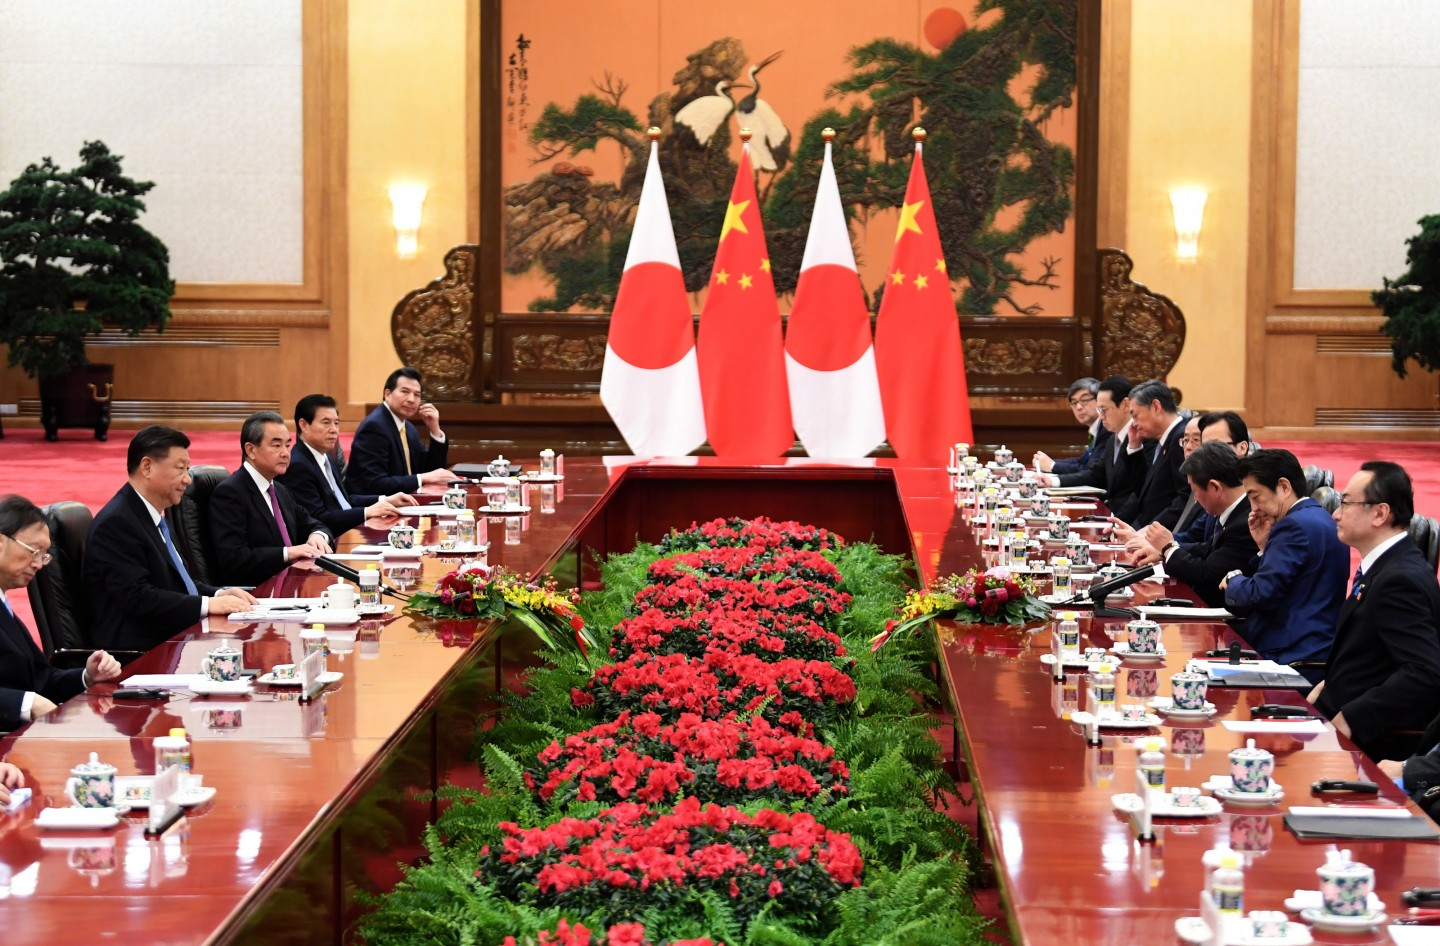 Japan's Prime Minister Shinzo Abe (second, right) talks to China's President Xi Jinping (second, left) during a meeting at the Great Hall of the People in Beijing on 23 December 2019. Xi is expected to visit Japan later this year. (Noel Celis/POOL/AFP)